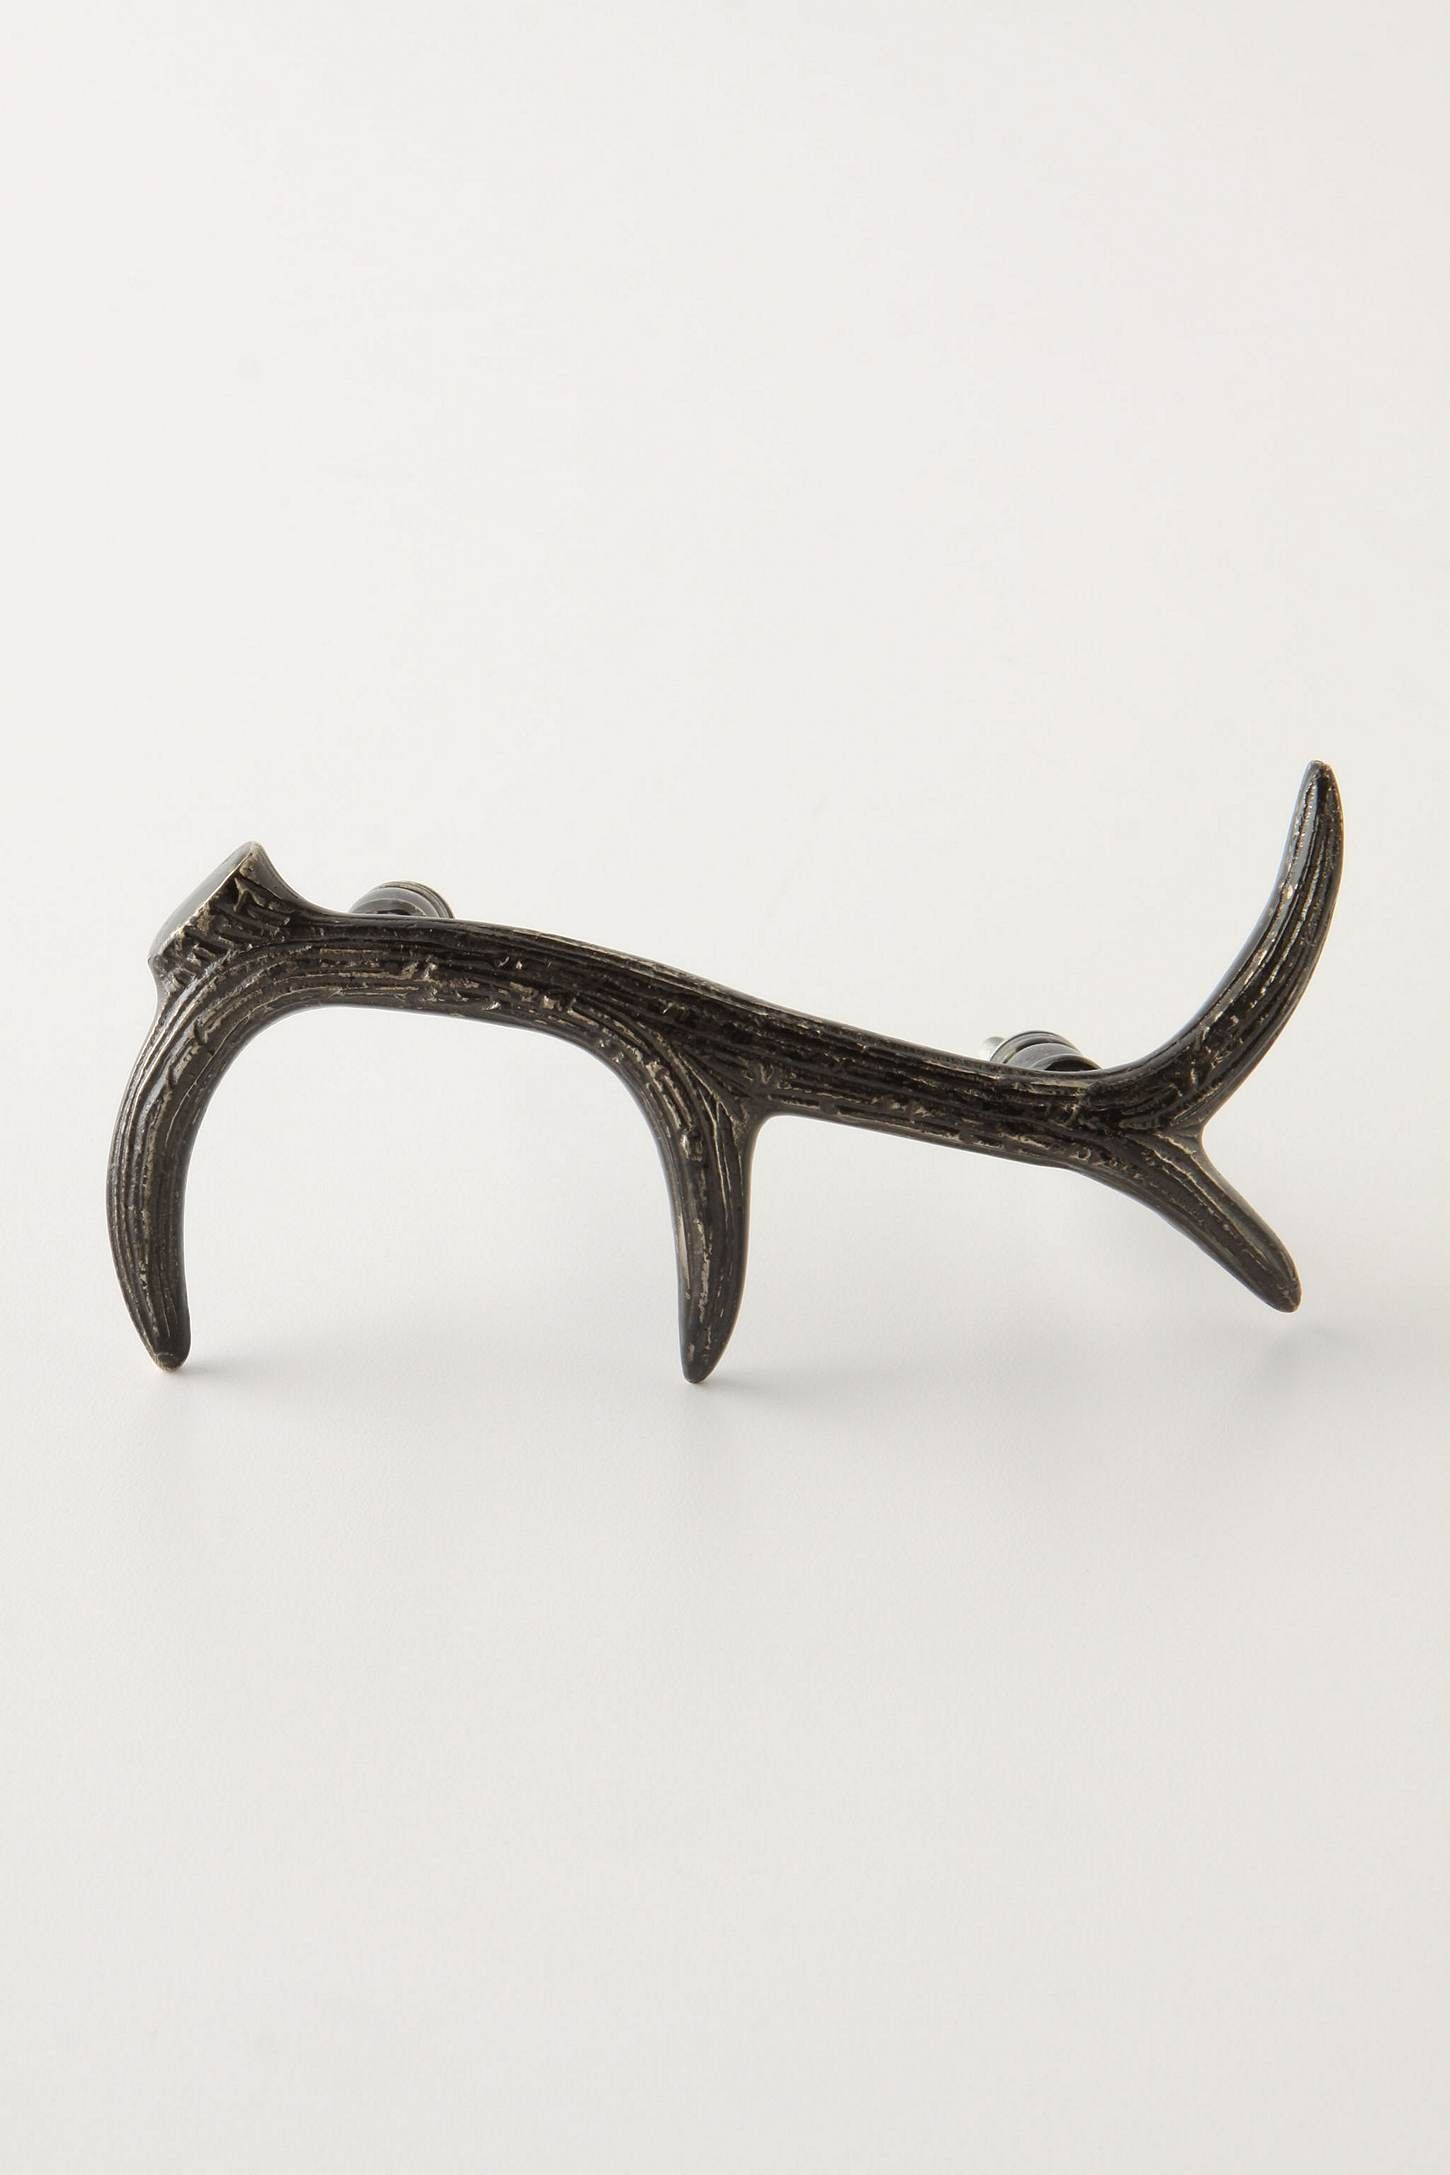 cor with cabinet drawer facing right elk kitchen locahaca d pulls hardware knob forest knobs antler black rustic